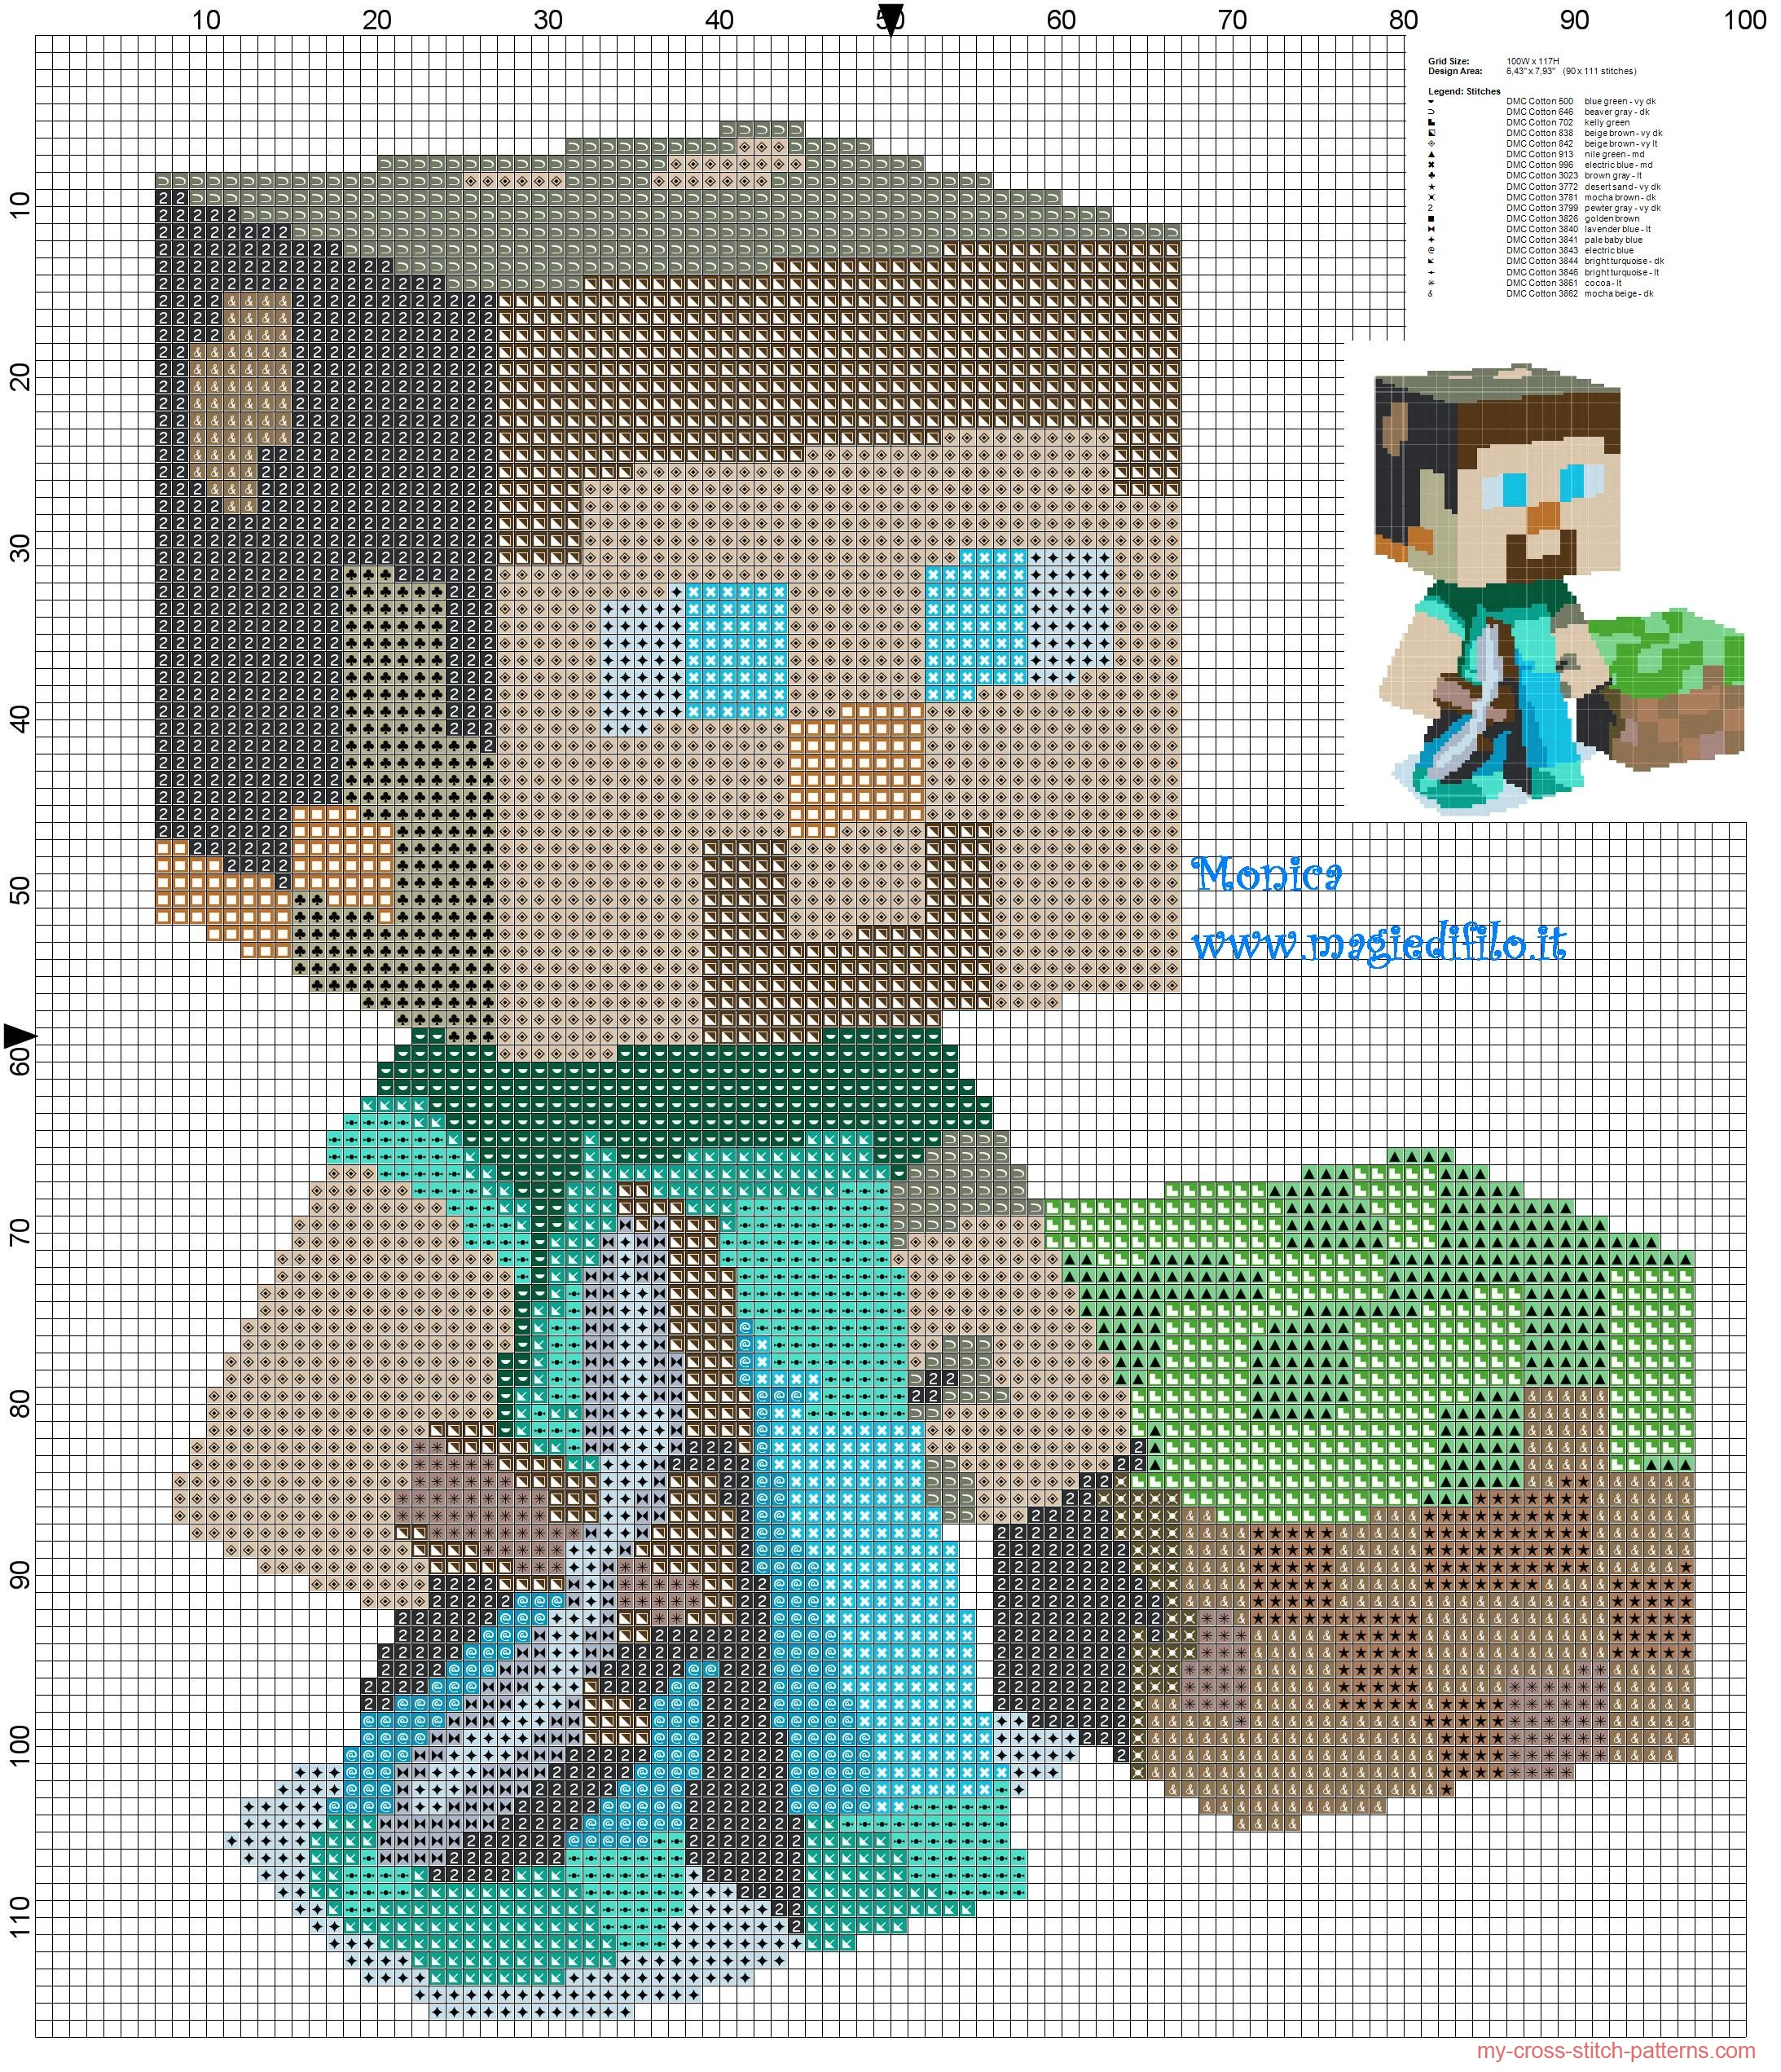 steve_minecraft_cross_stitch_pattern